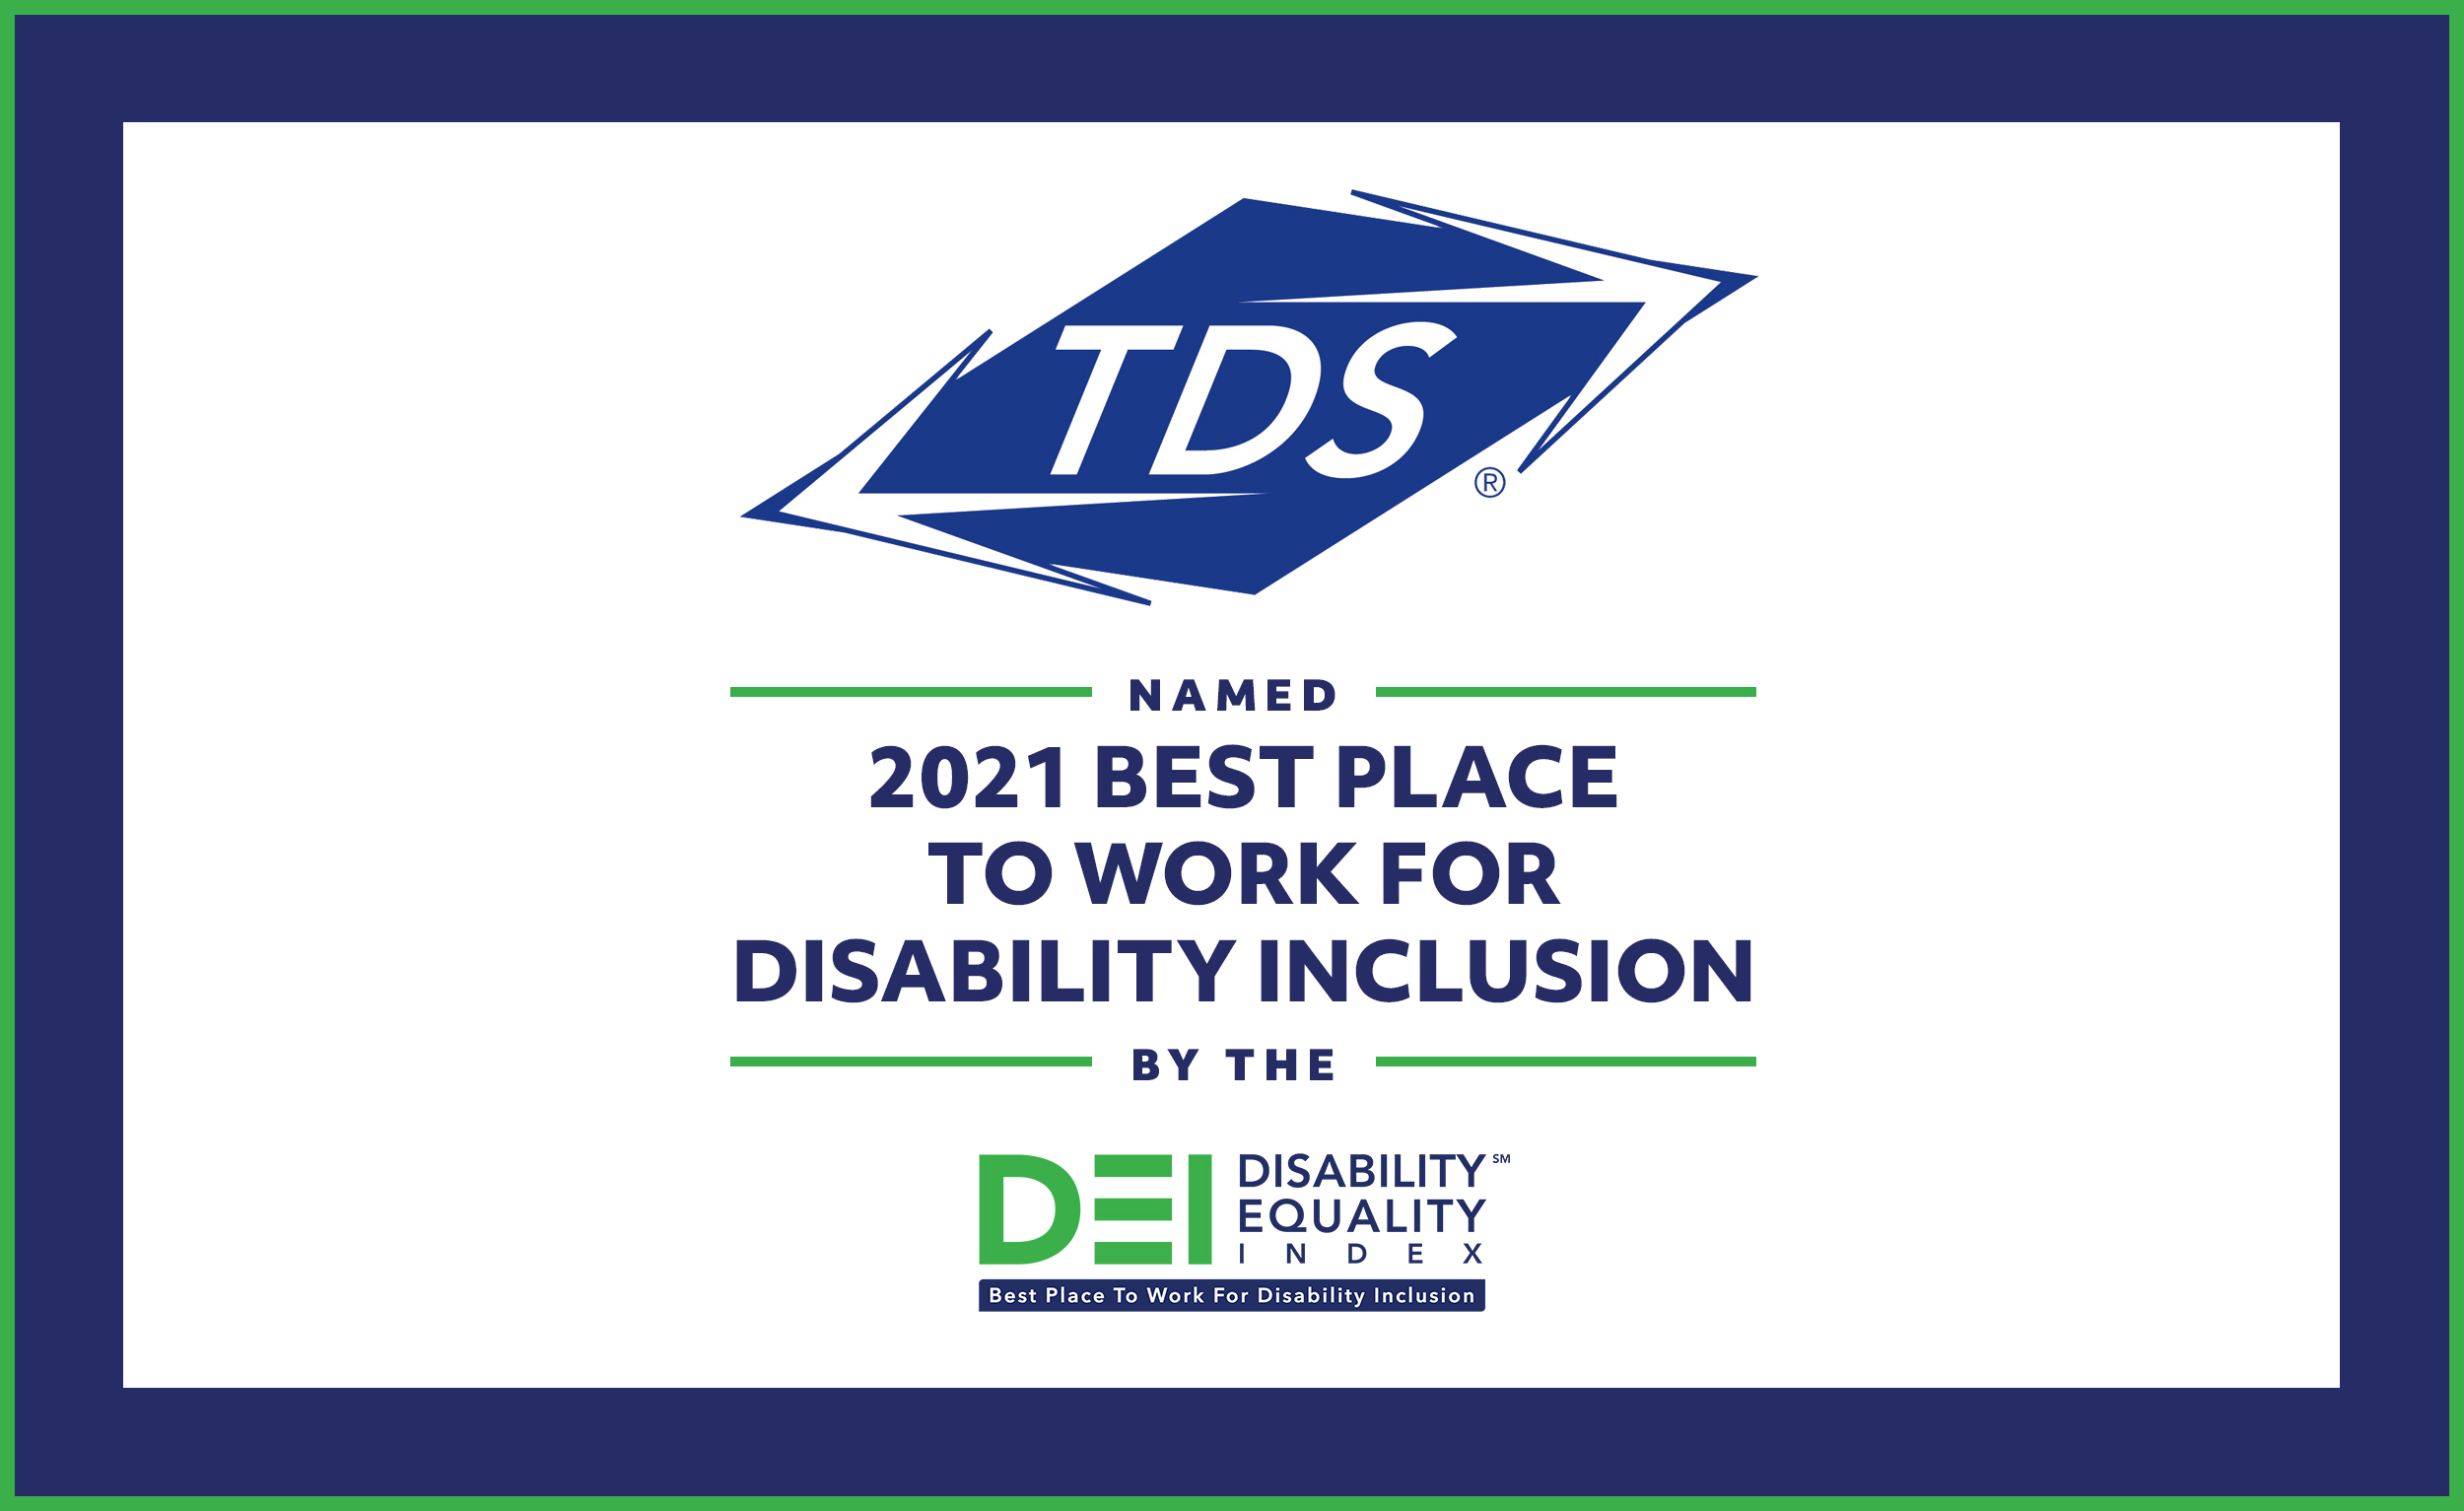 TDS named Best Place to Work for Disability Inclusion image